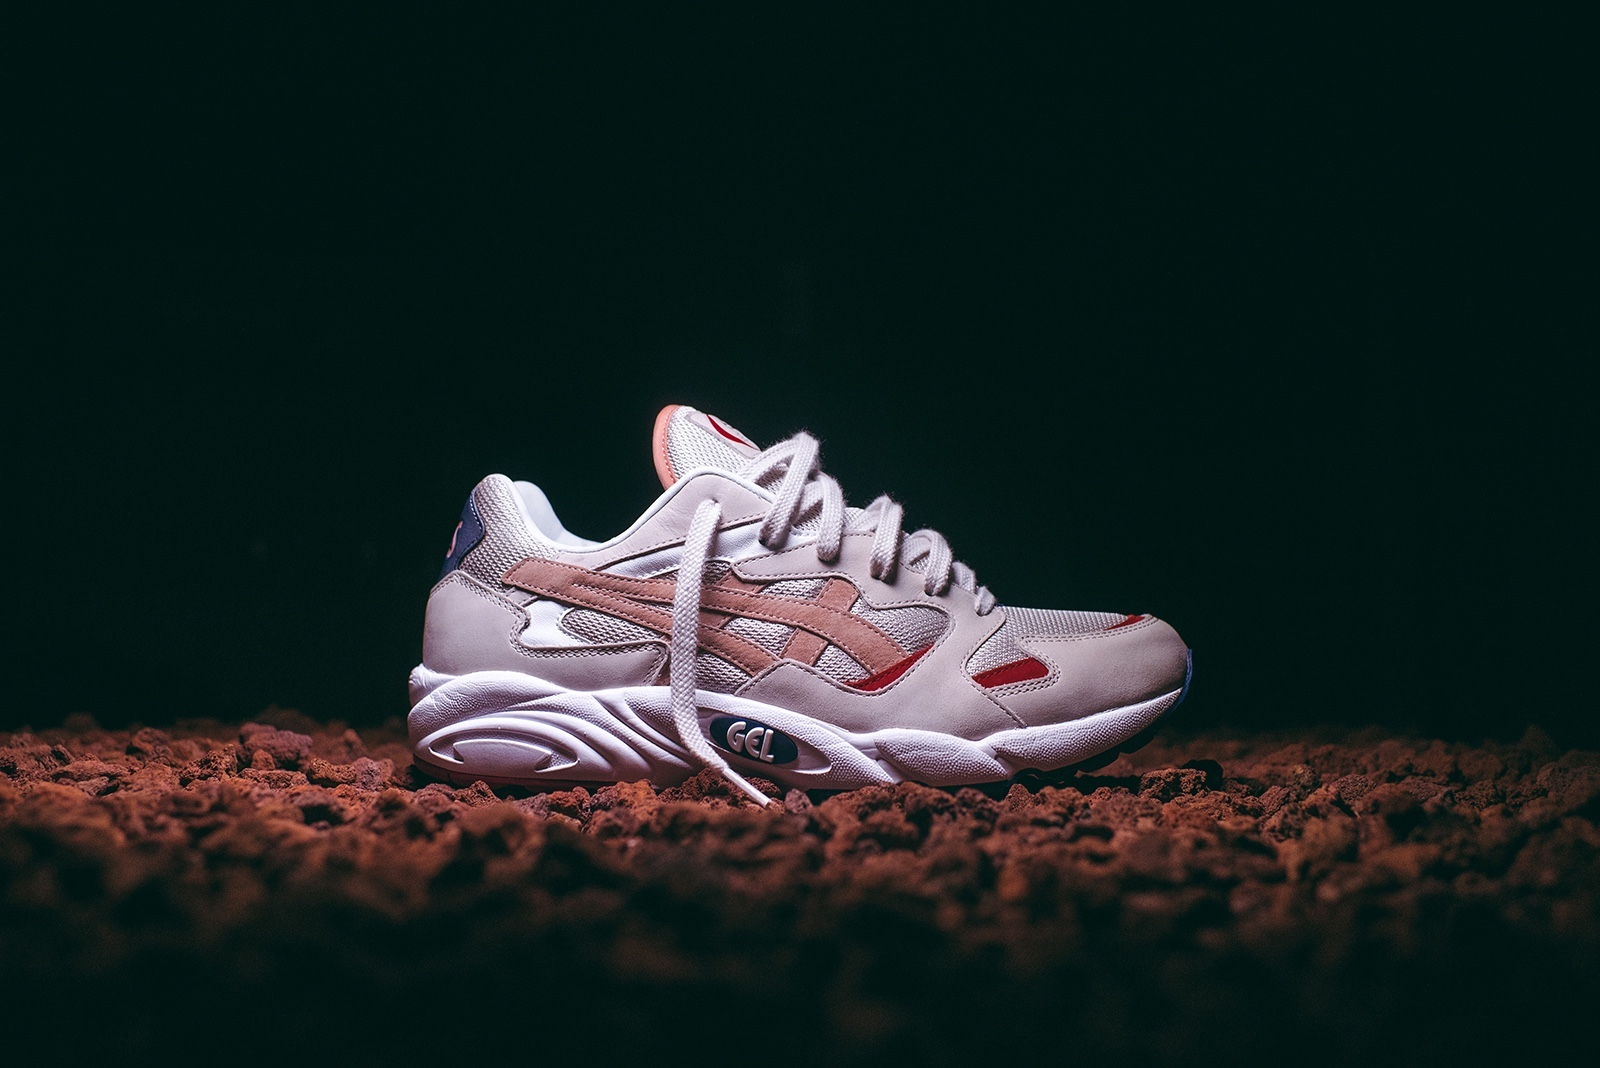 ronnie-fieg-asics-volcano-2-0-collection-5